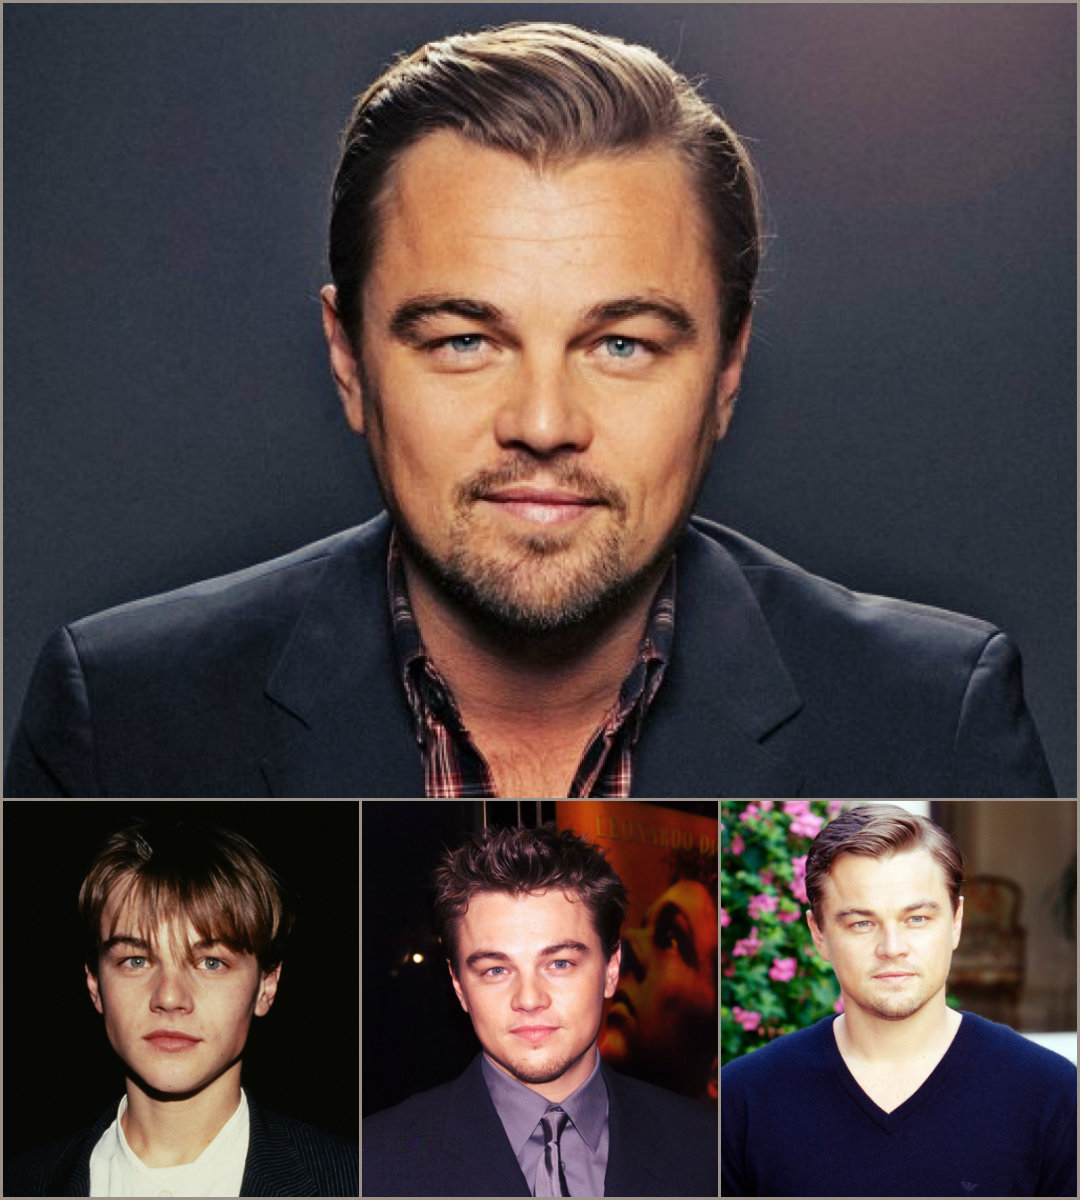 Leonardo DiCaprio Hairstyles Makeover | OWESOME HAIRSTYLE FOR MAN